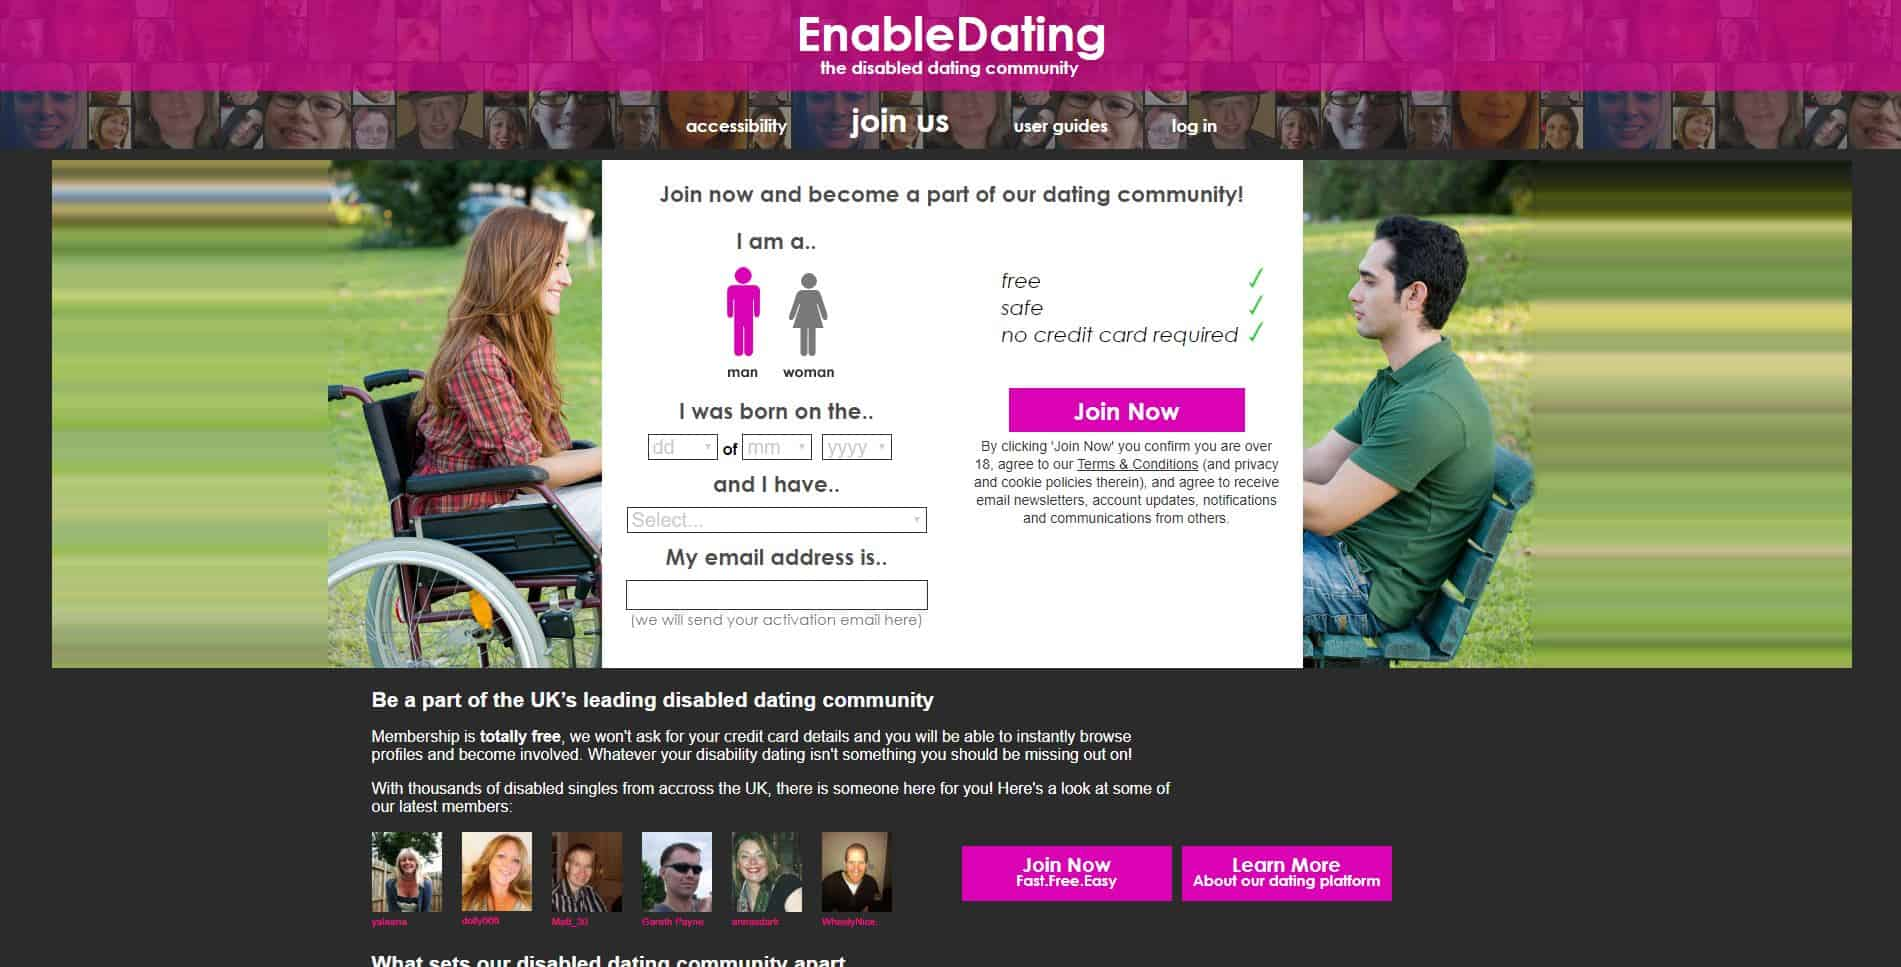 enable dating-min